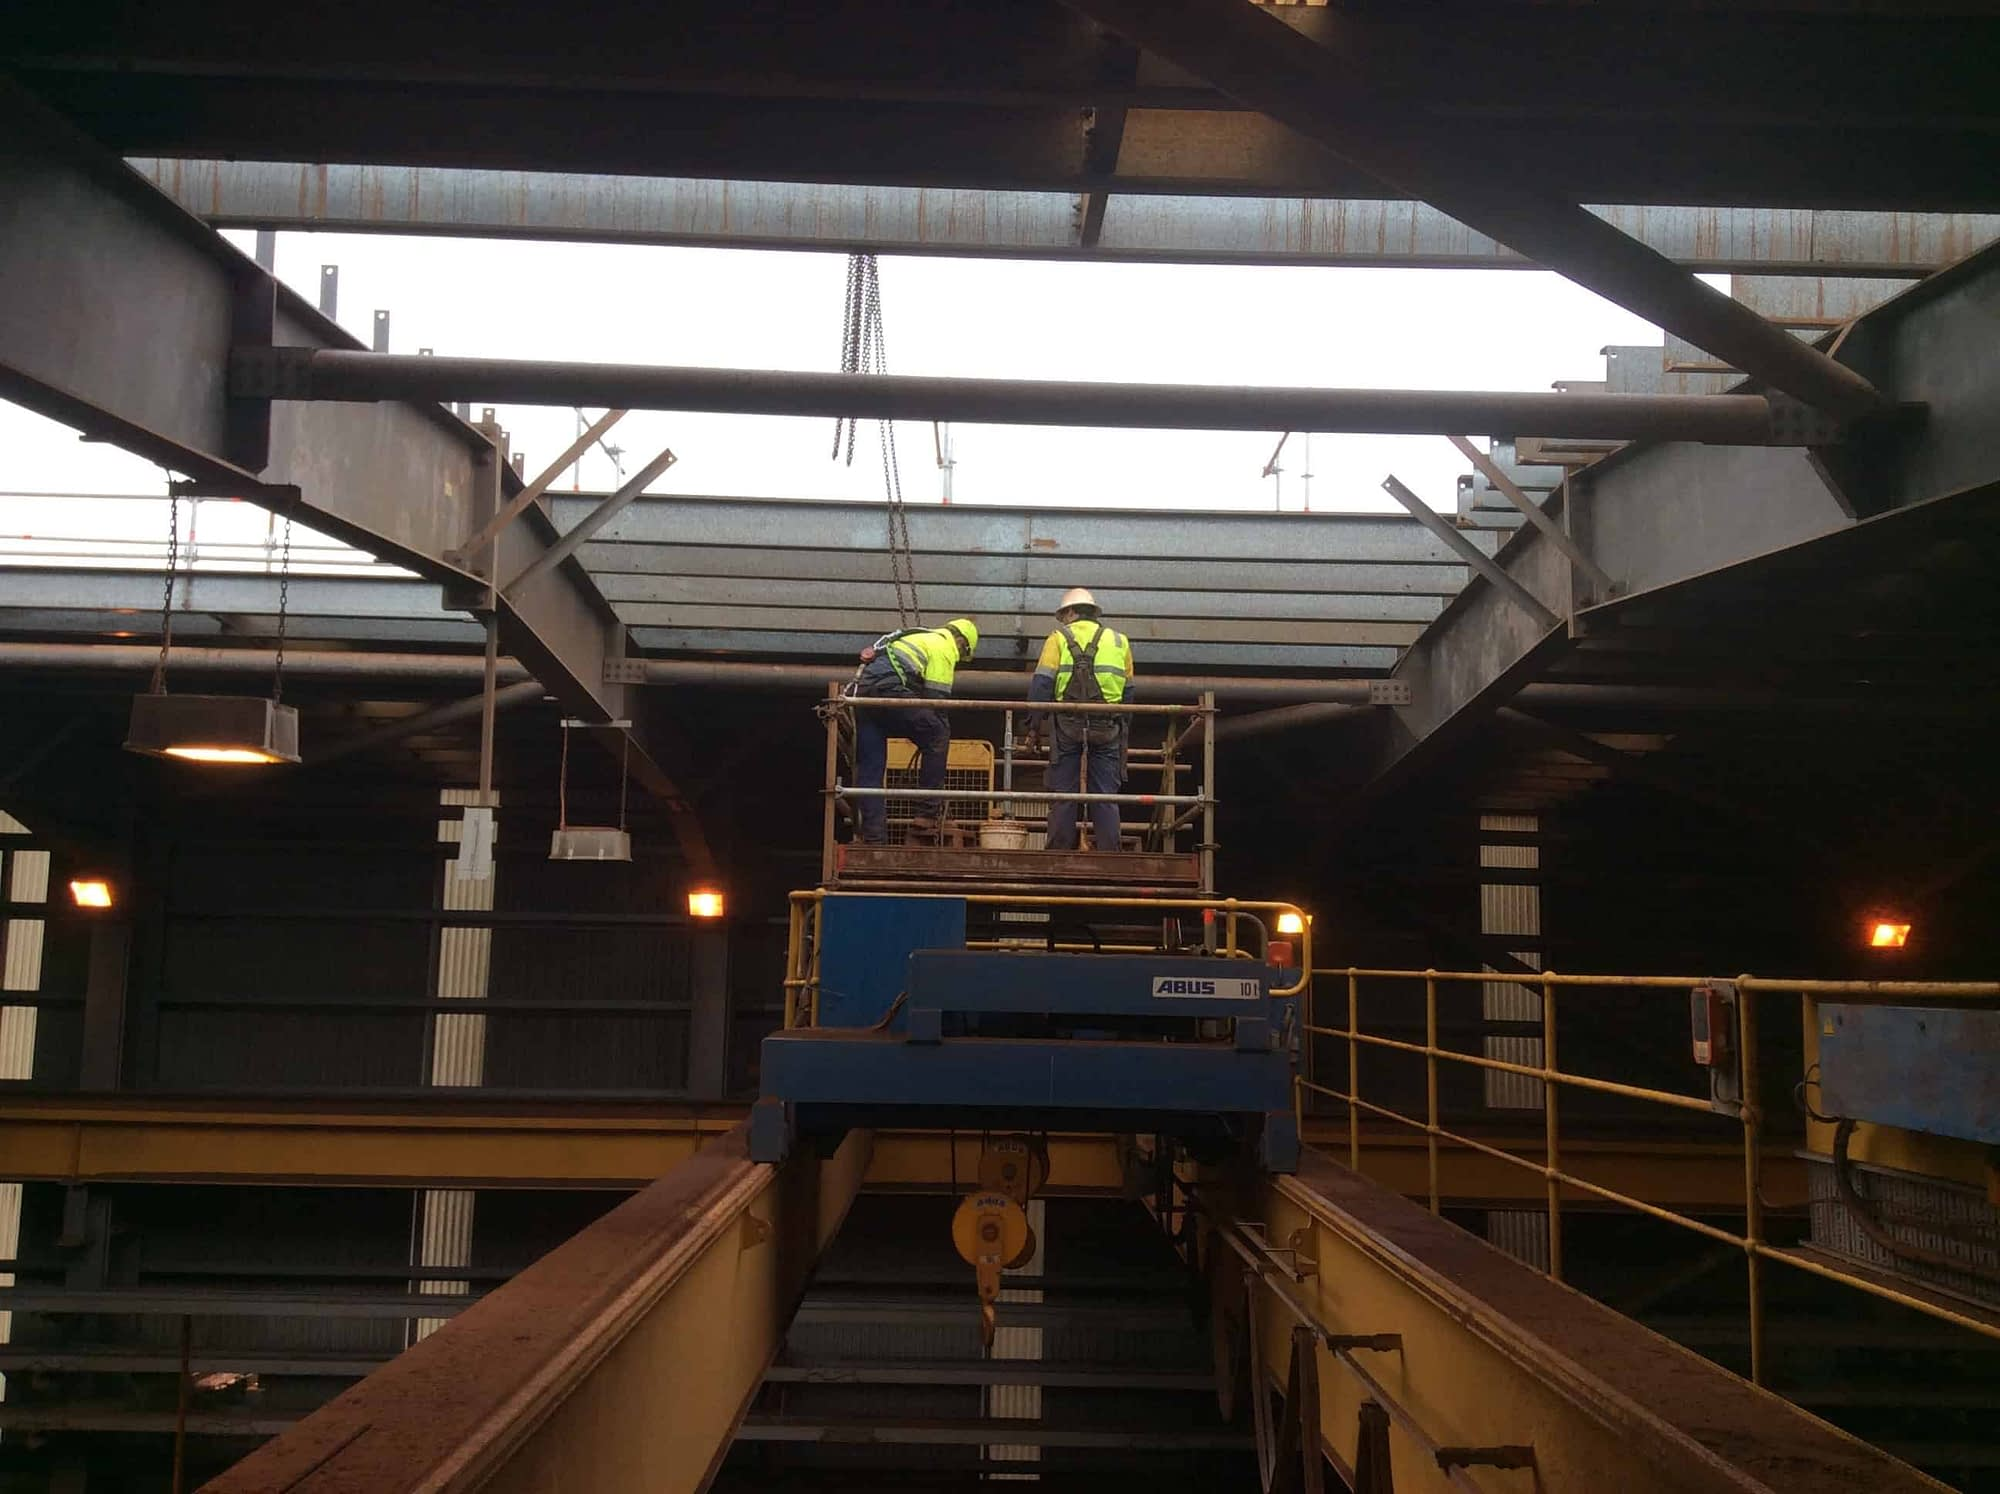 Commercial Roofing Maintenance and Repair